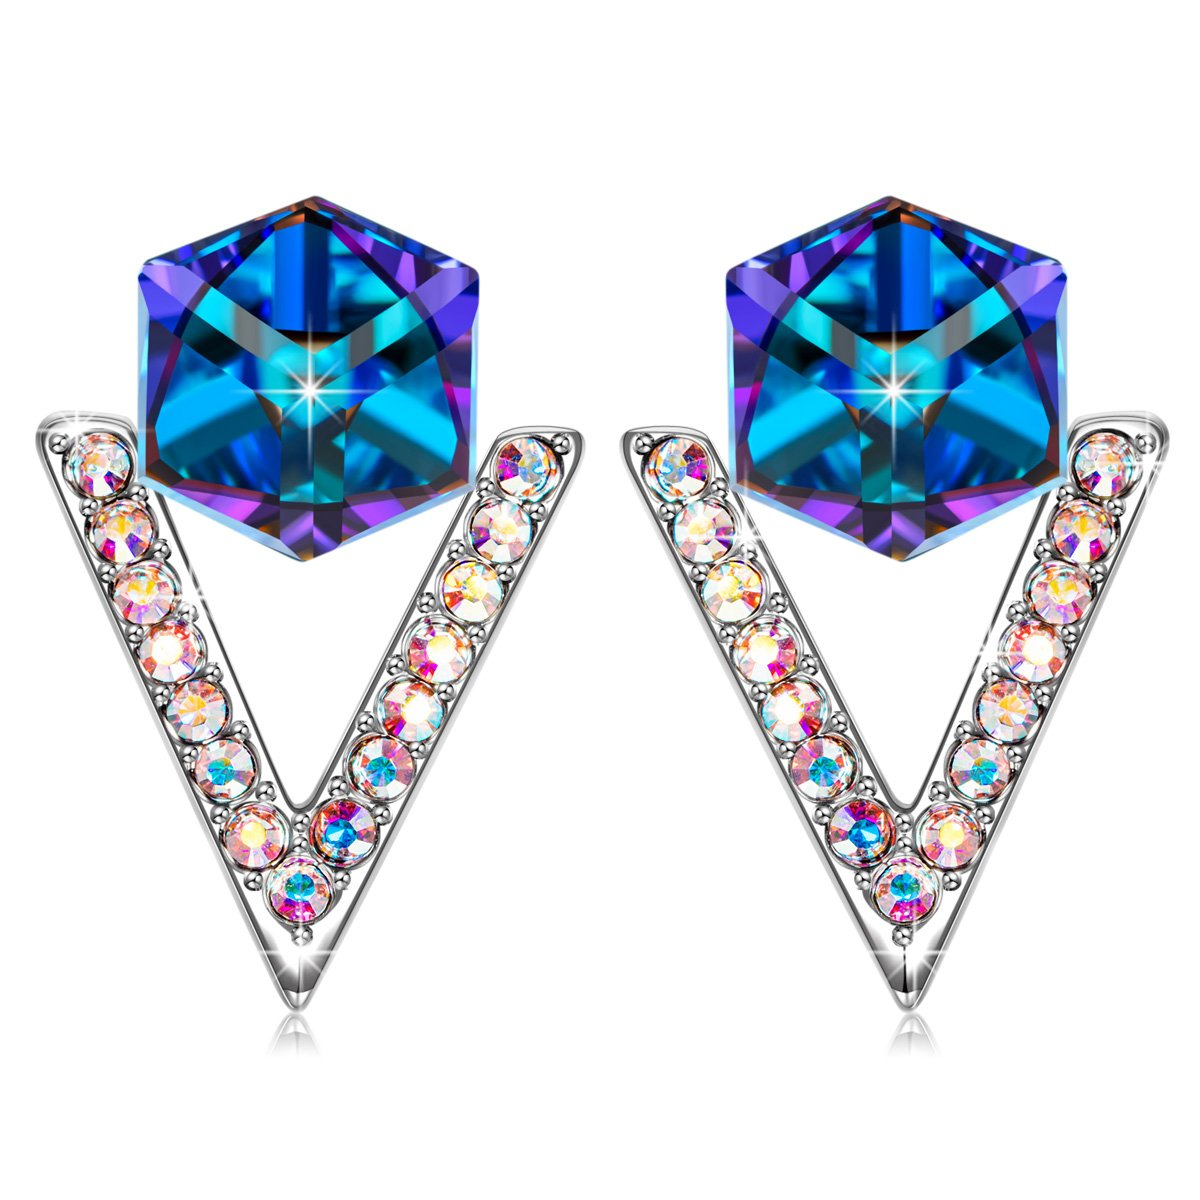 SIVERY 'Love in Eiffel' Stud Earrings with Blue Swarovksi Crystal, Jewelry for Women Gifts for Her (Love in Eiffel Earrings)